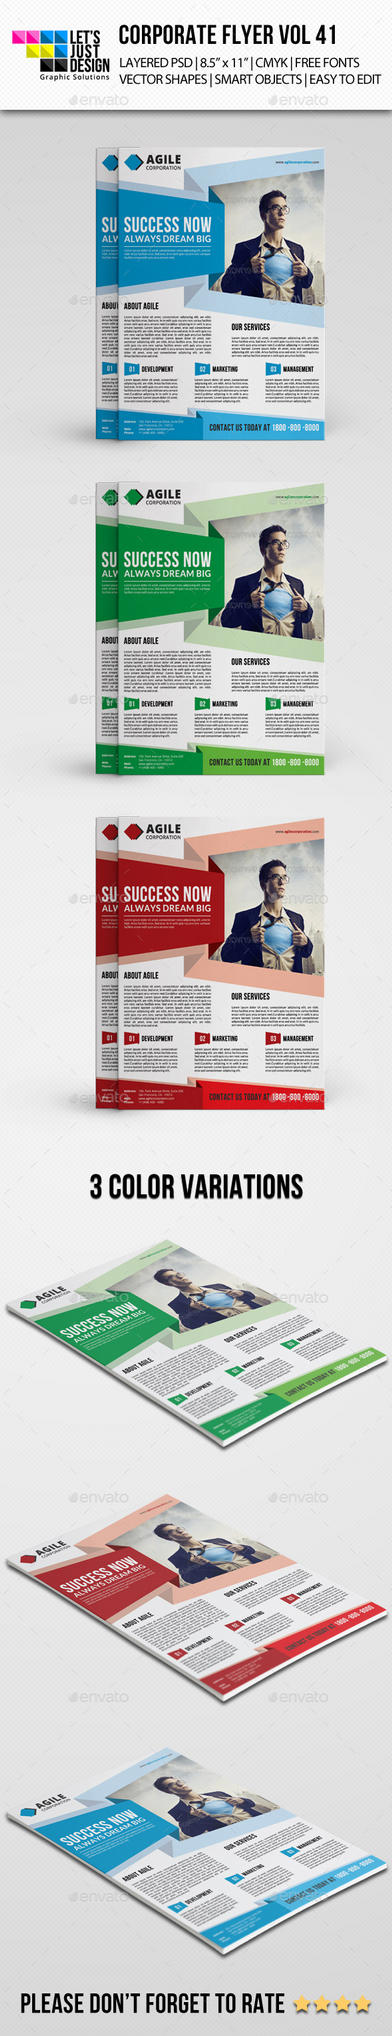 Corporate Flyer Template Vol 41 by jasonmendes